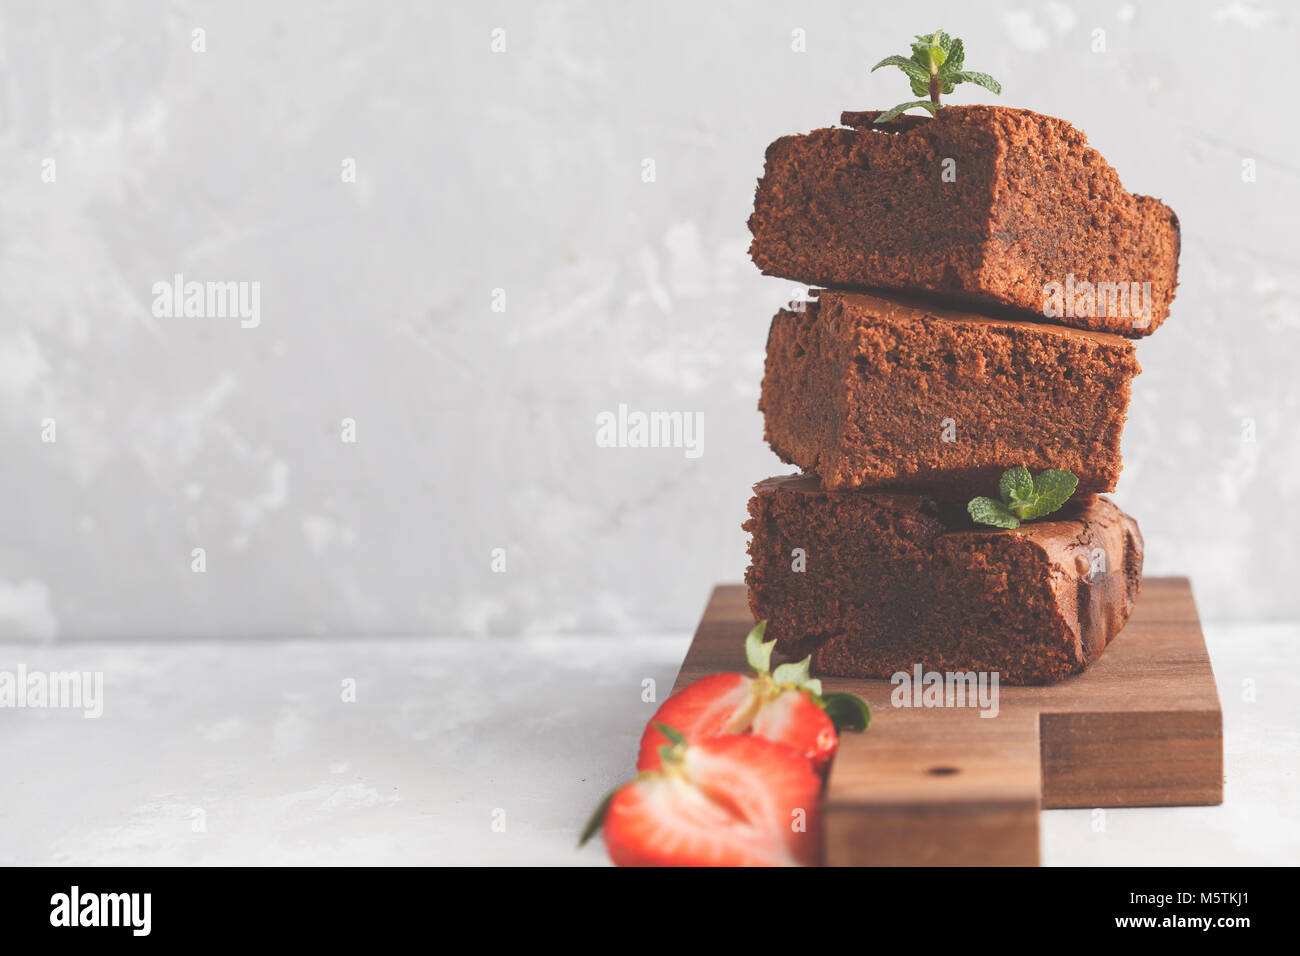 how to make chocolate pieces for cake decorating